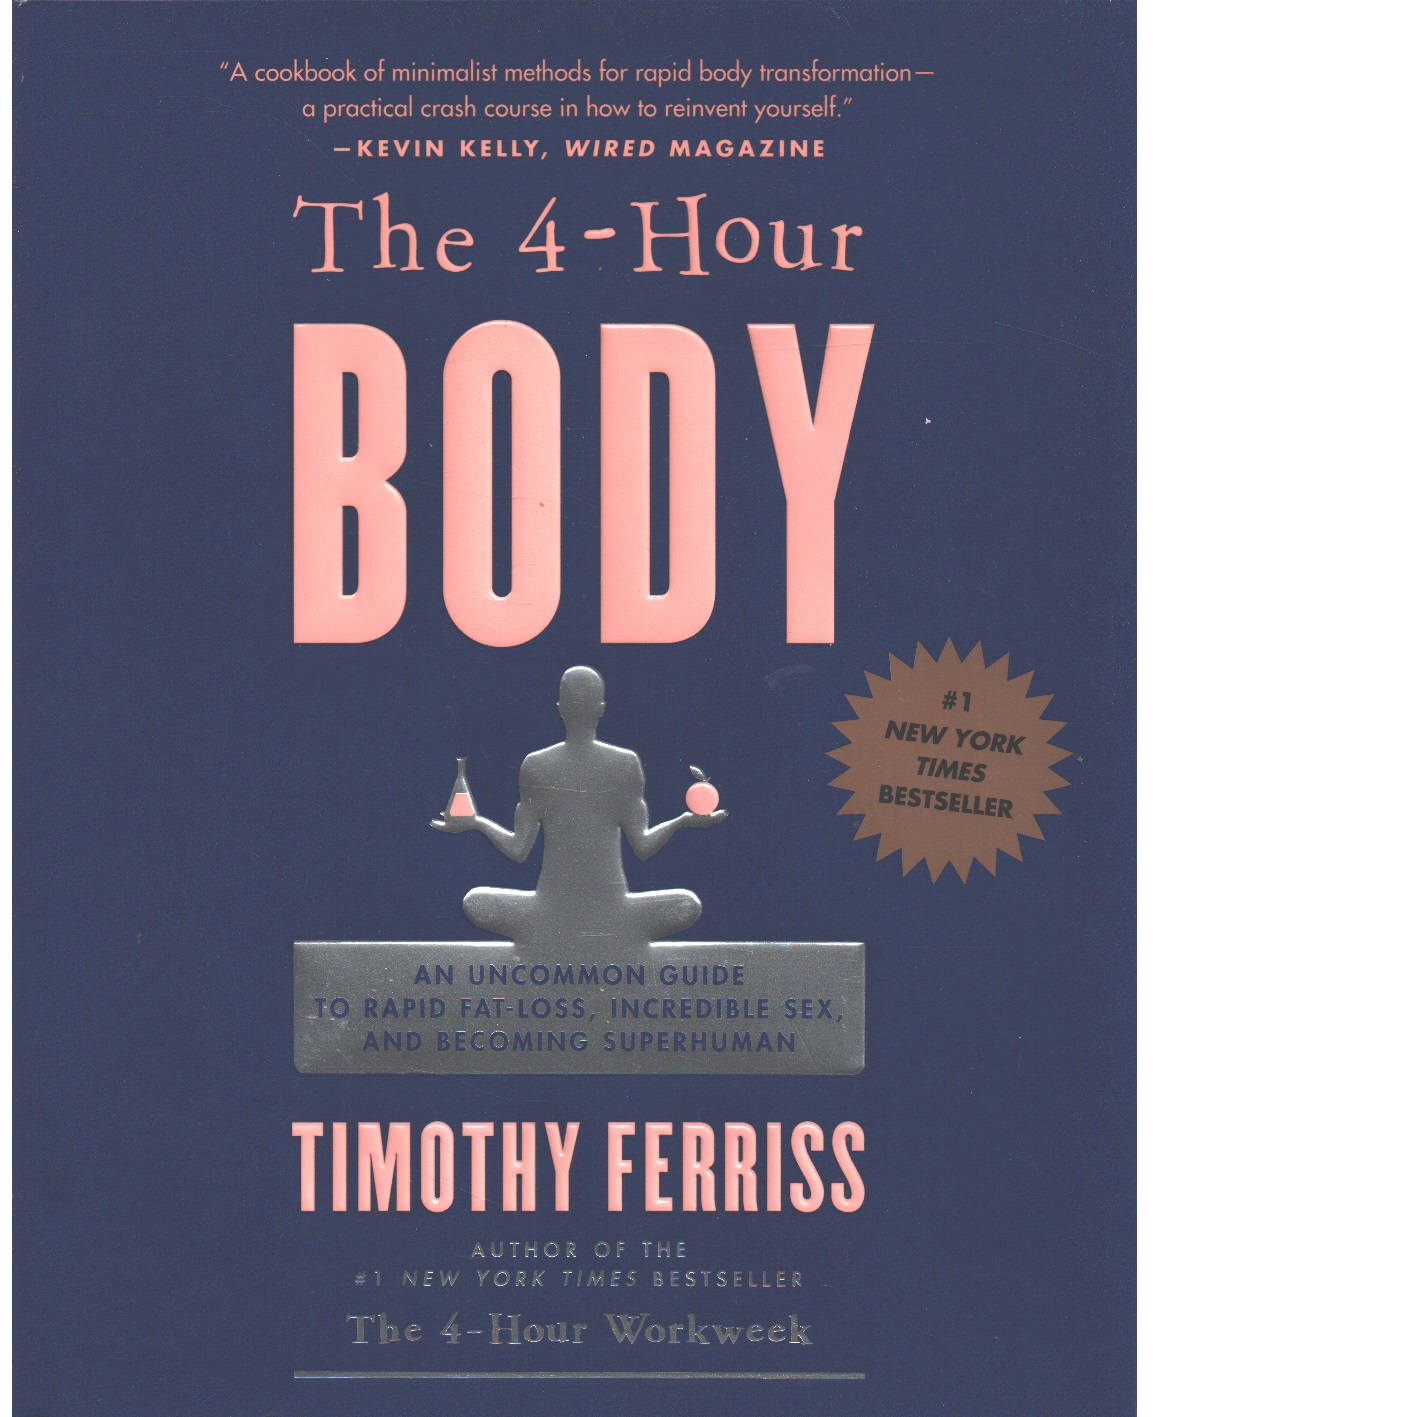 The 4-Hour Body: An Uncommon Guide to Rapid Fat-Loss, Incredible Sex, and Becoming Superhuman  -  Ferriss, Timothy